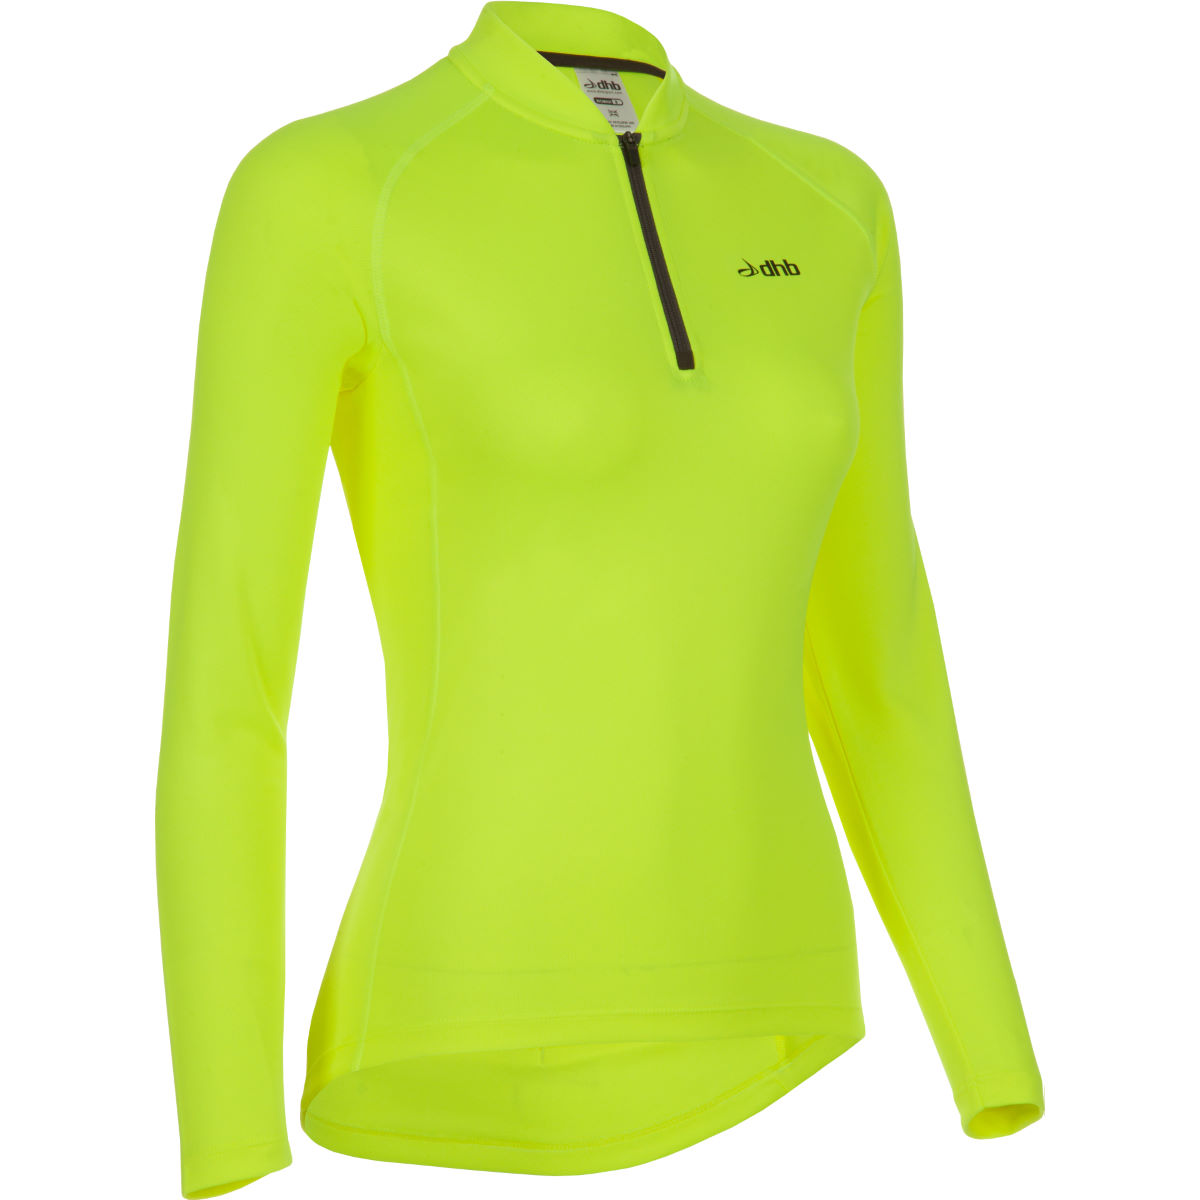 dhb Women's Active Hi Viz Long Sleeve Cycling Jersey